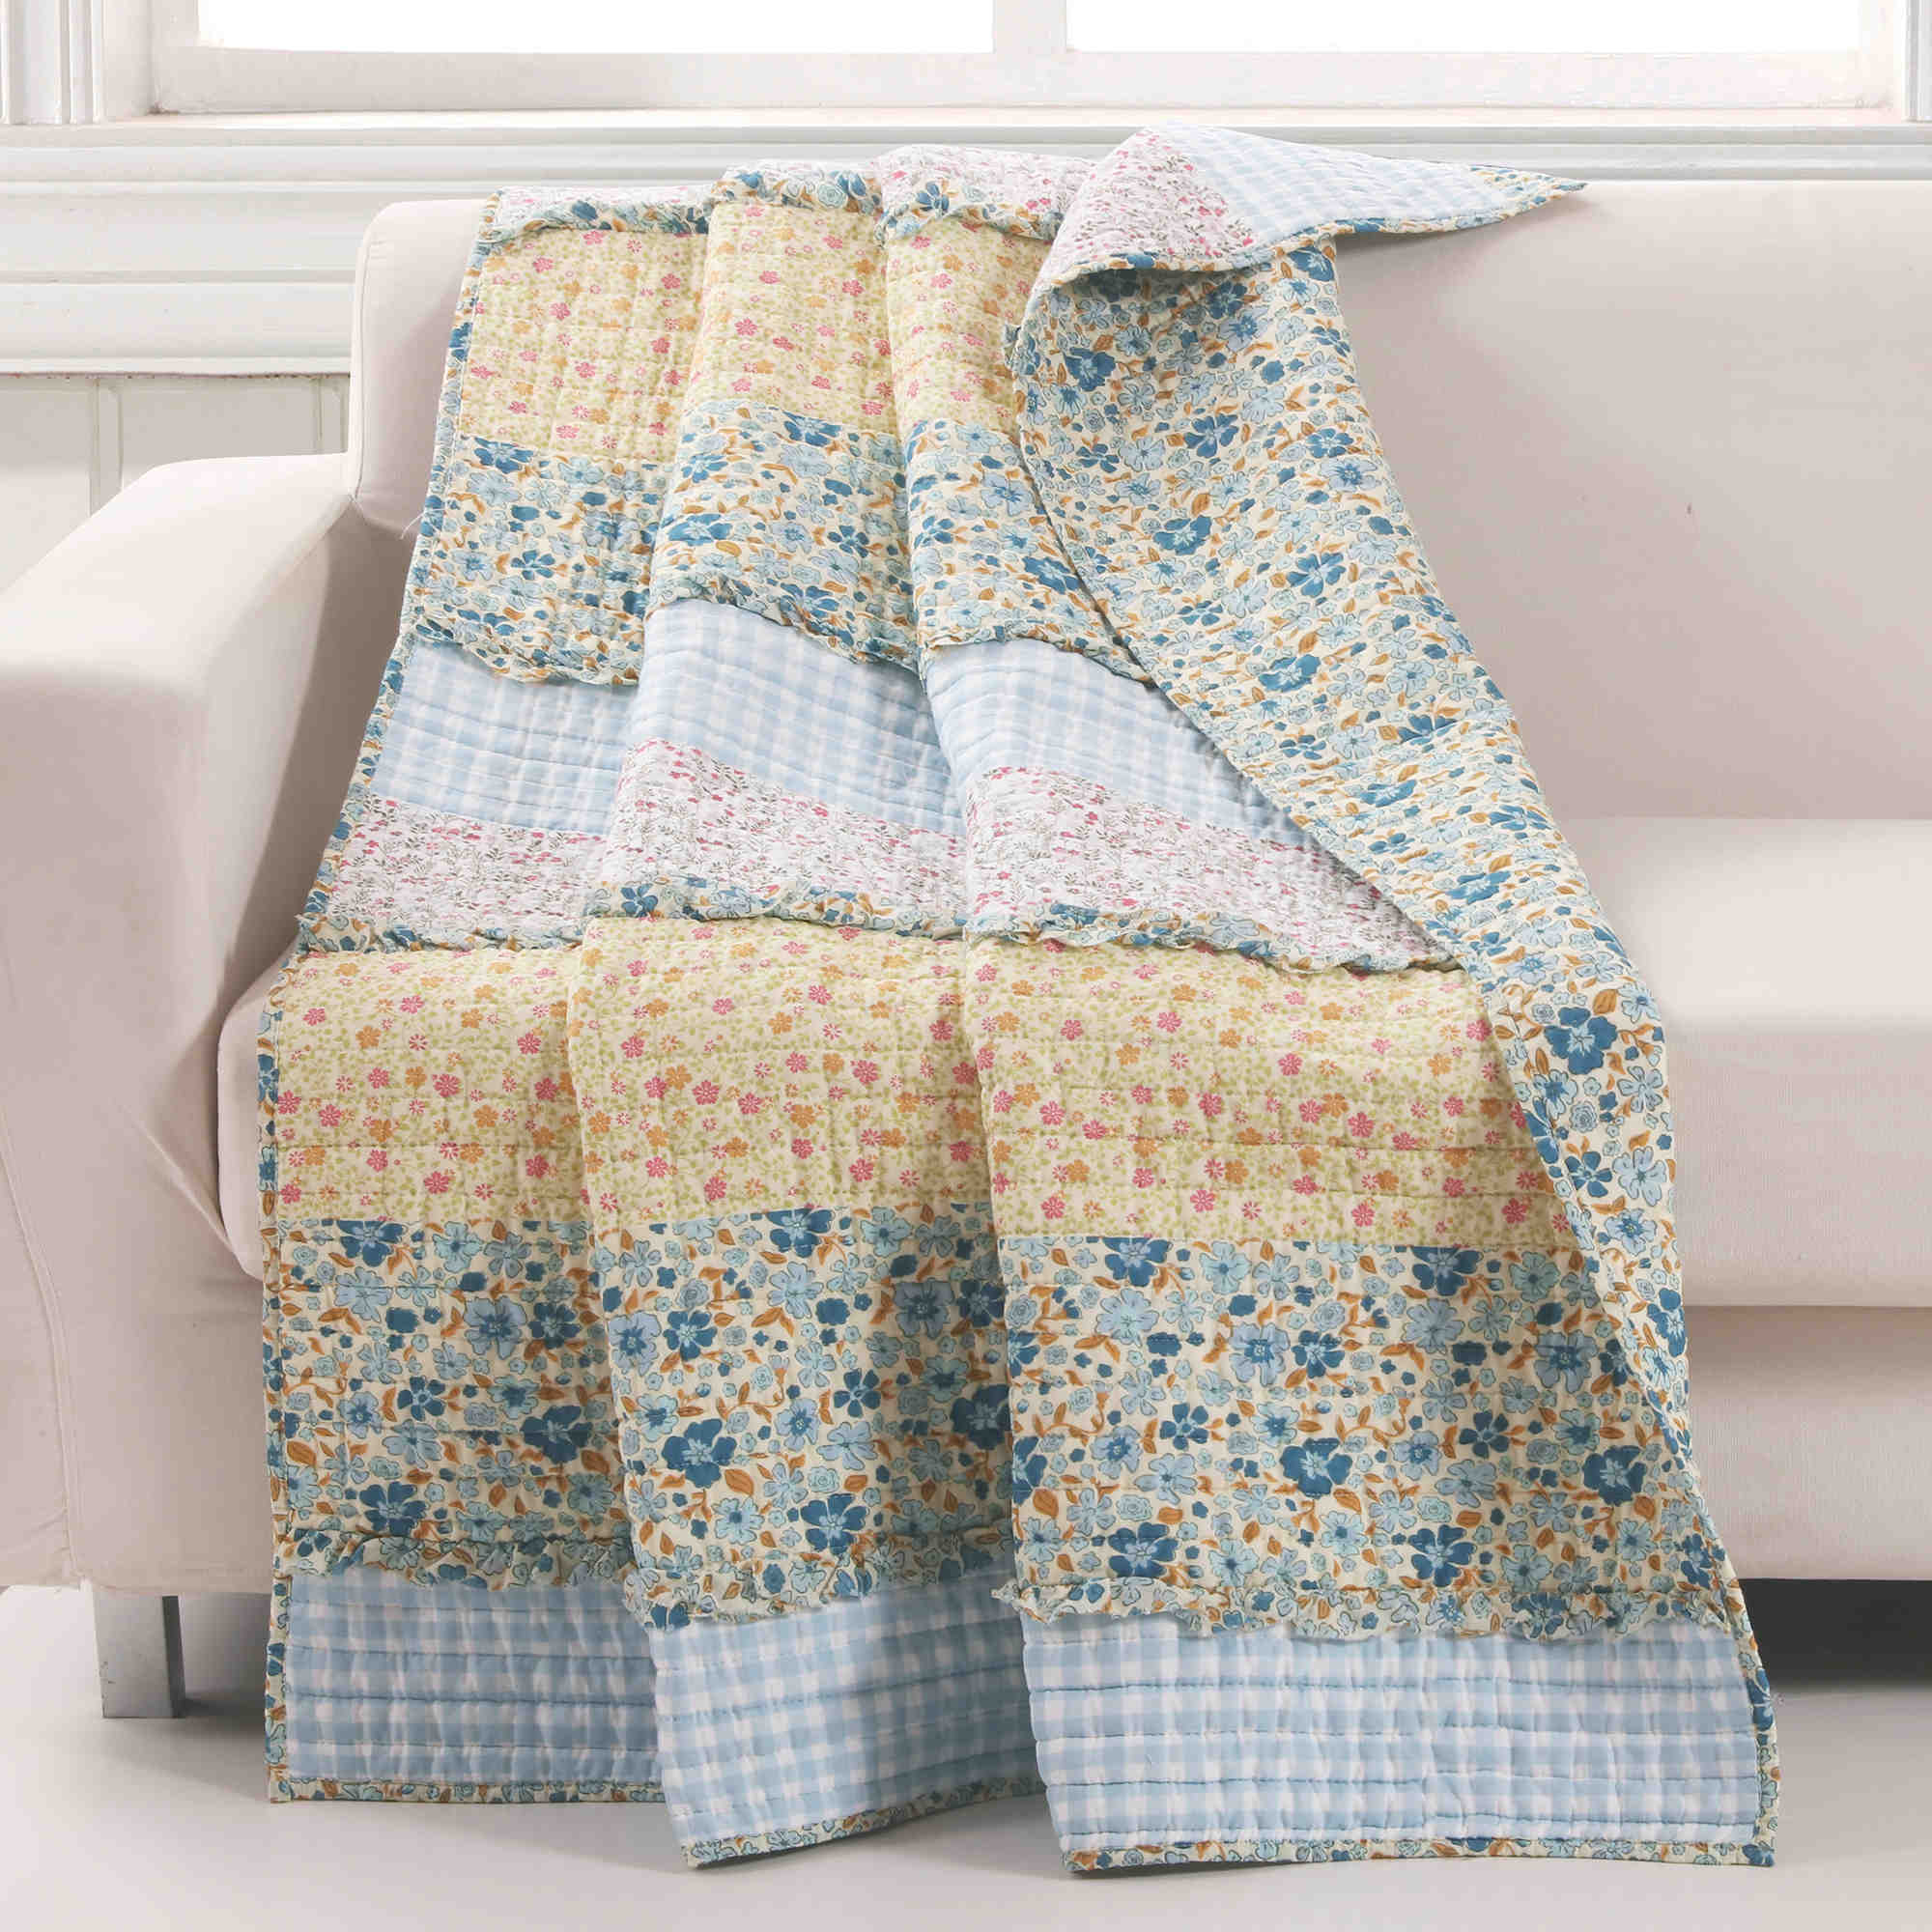 Ditsy Ruffle Multi Accessory Throw